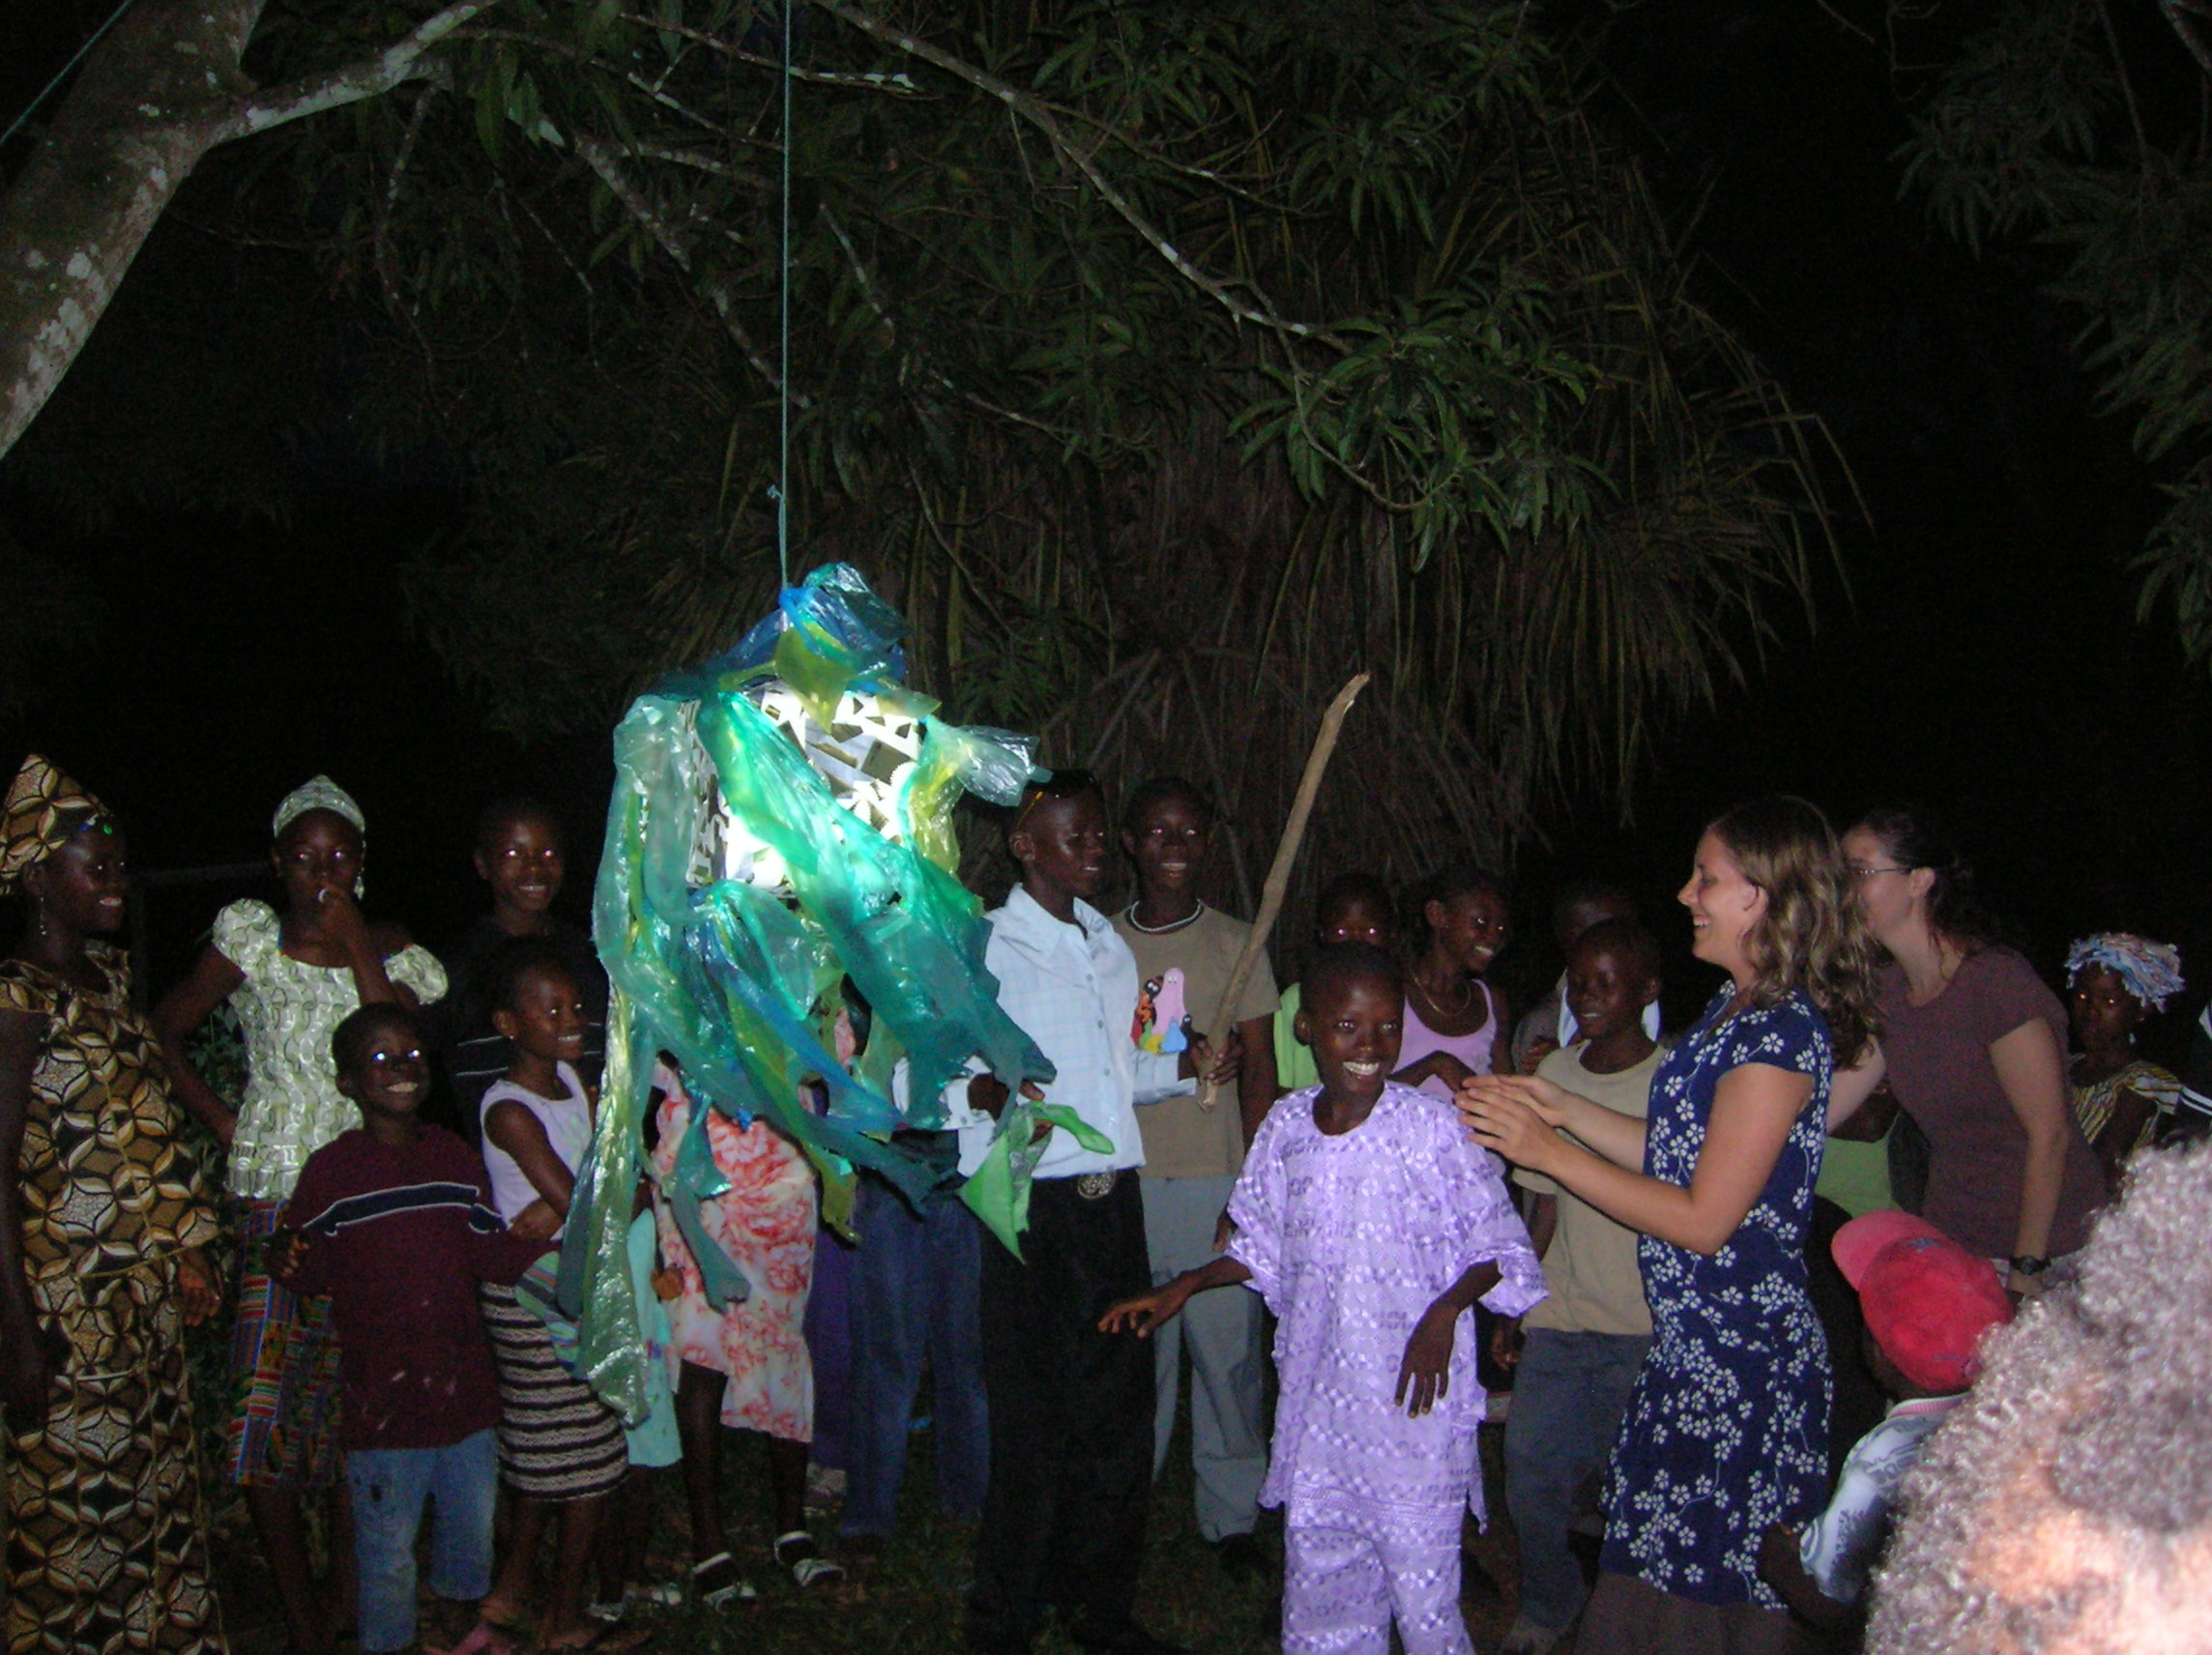 Pinata at the Pastoral Center birthday party, pre-riots